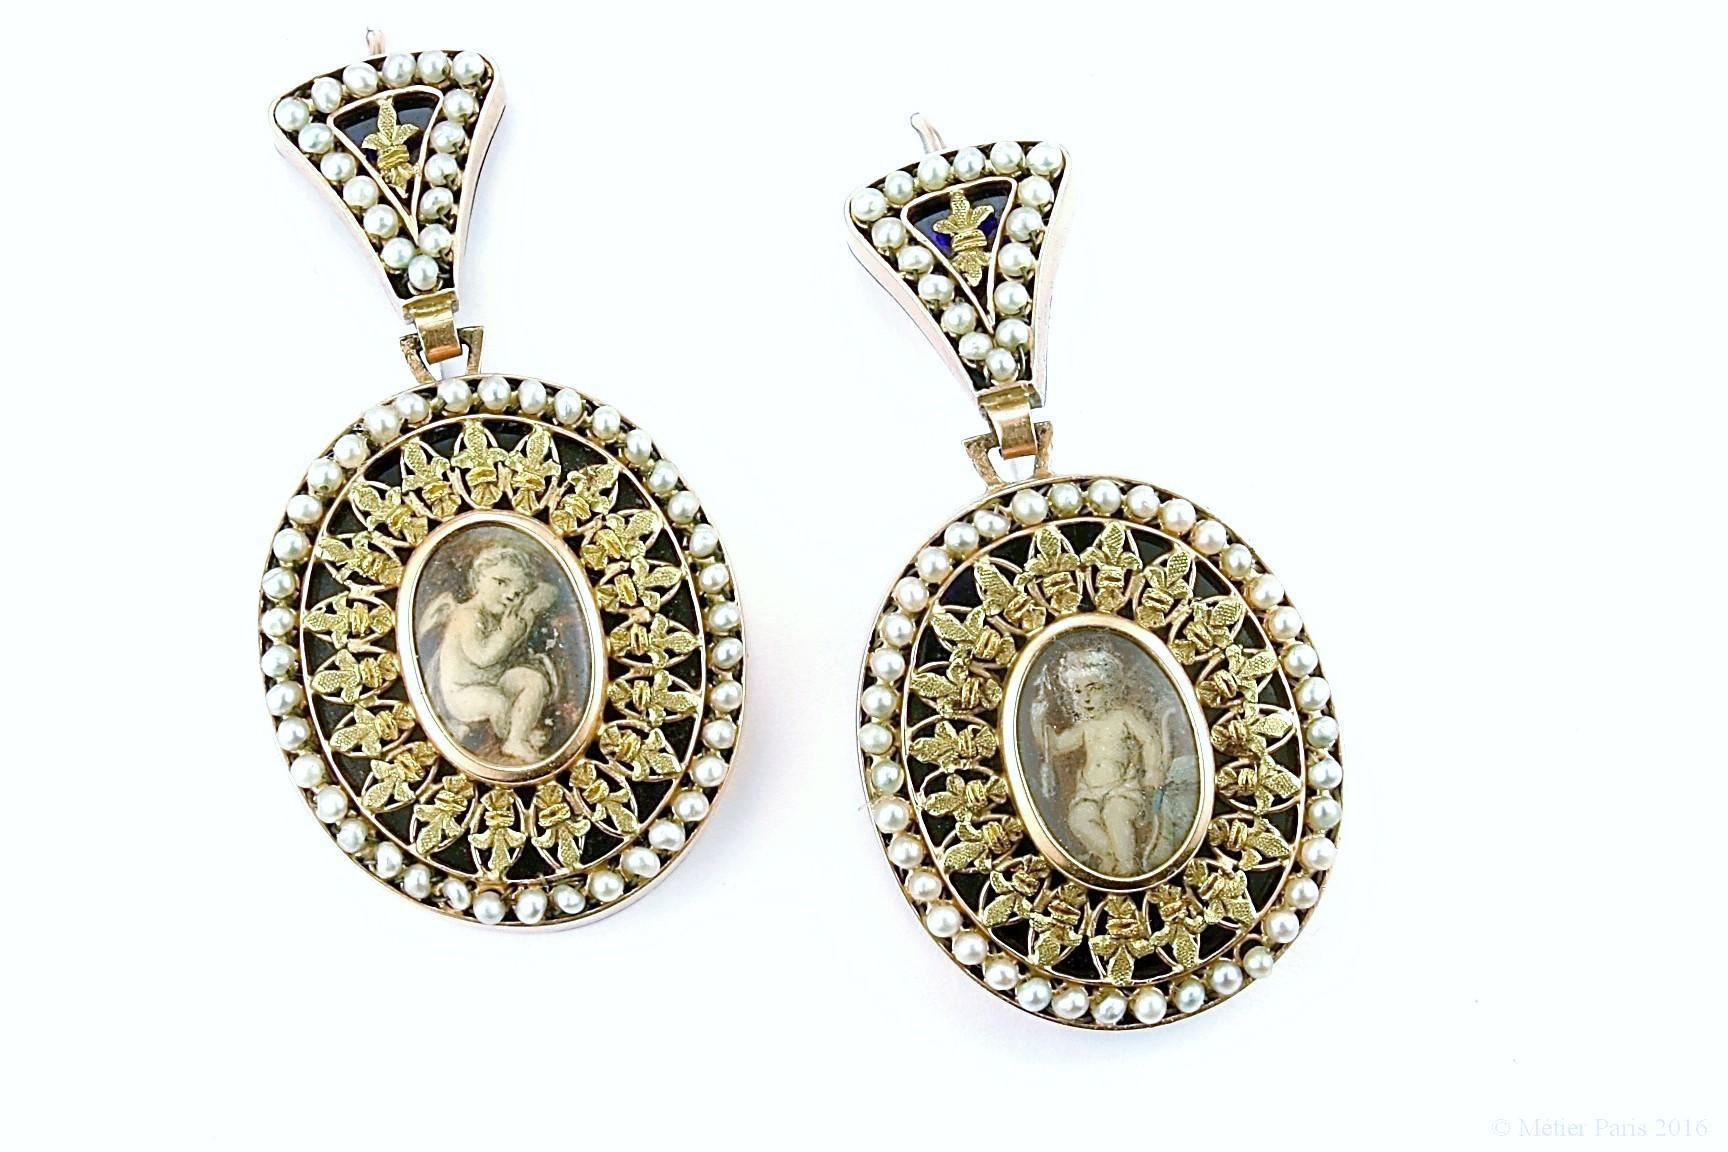 Rare Georgian Gold, Pearl and Enamel Earrings, c. 1775 - 1800